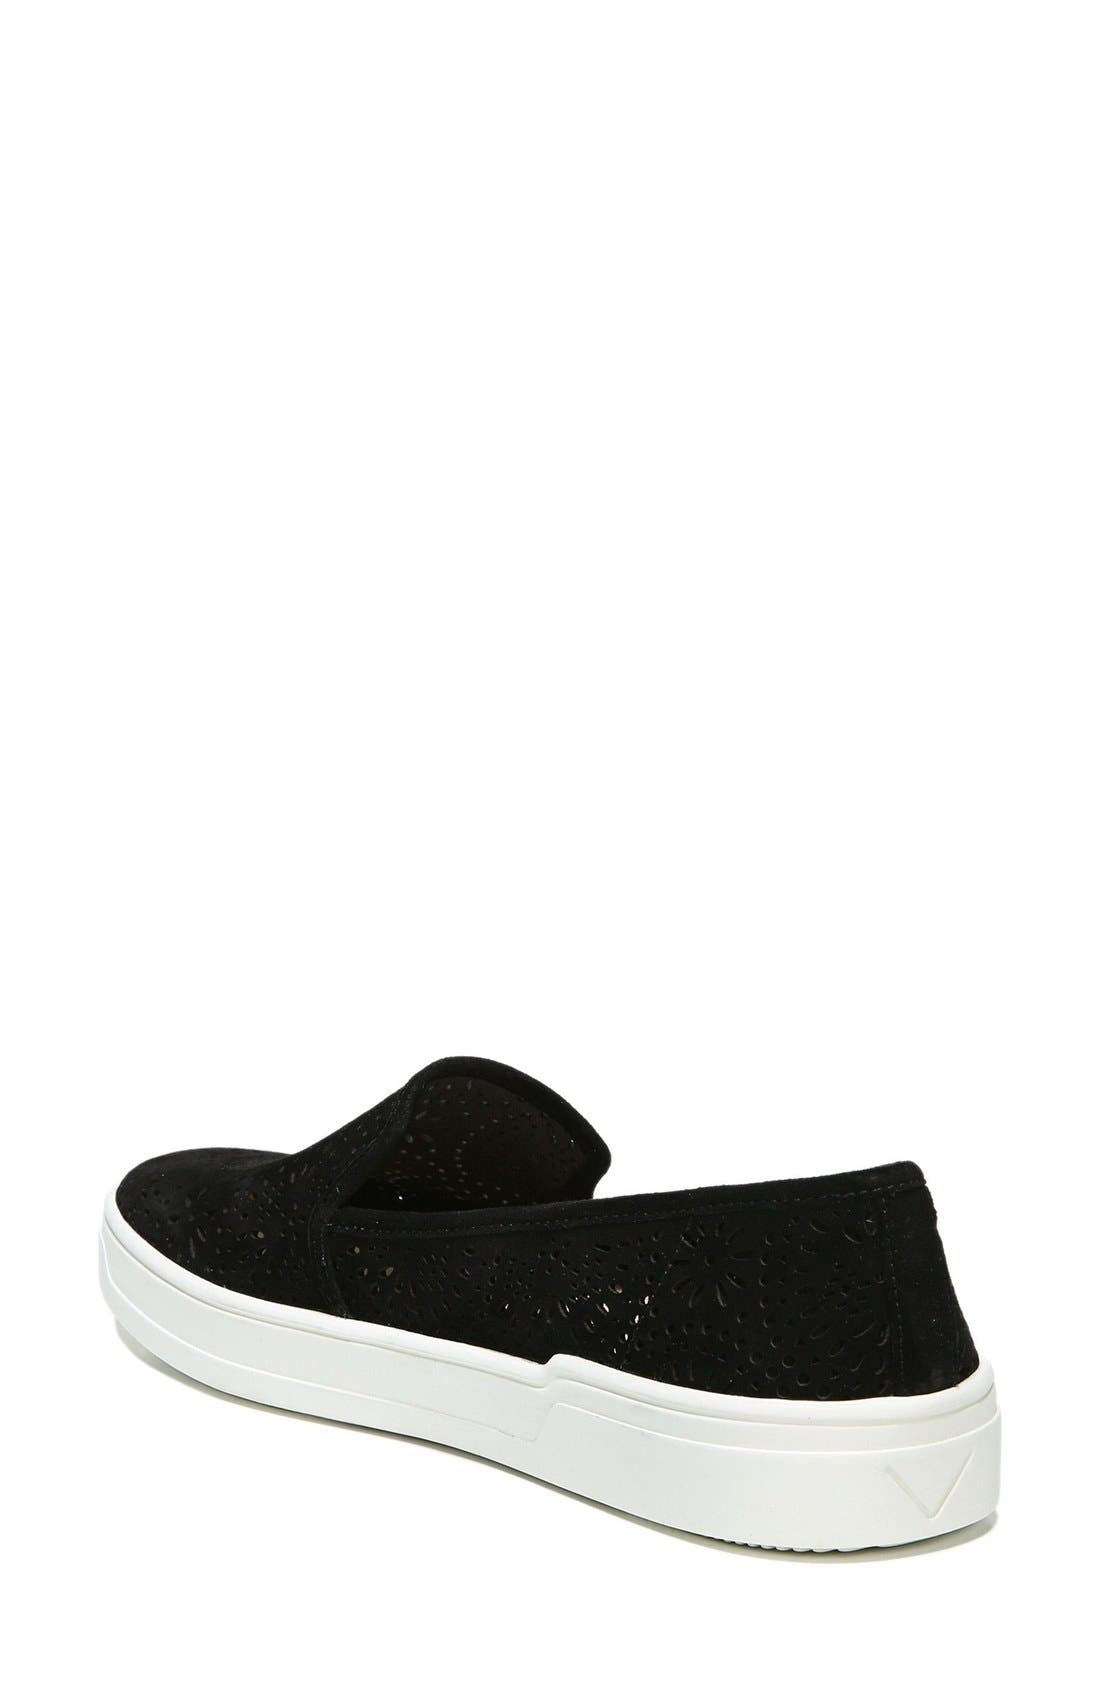 Alternate Image 2  - Via Spiga Gavra Perforated Slip-On Sneaker (Women)